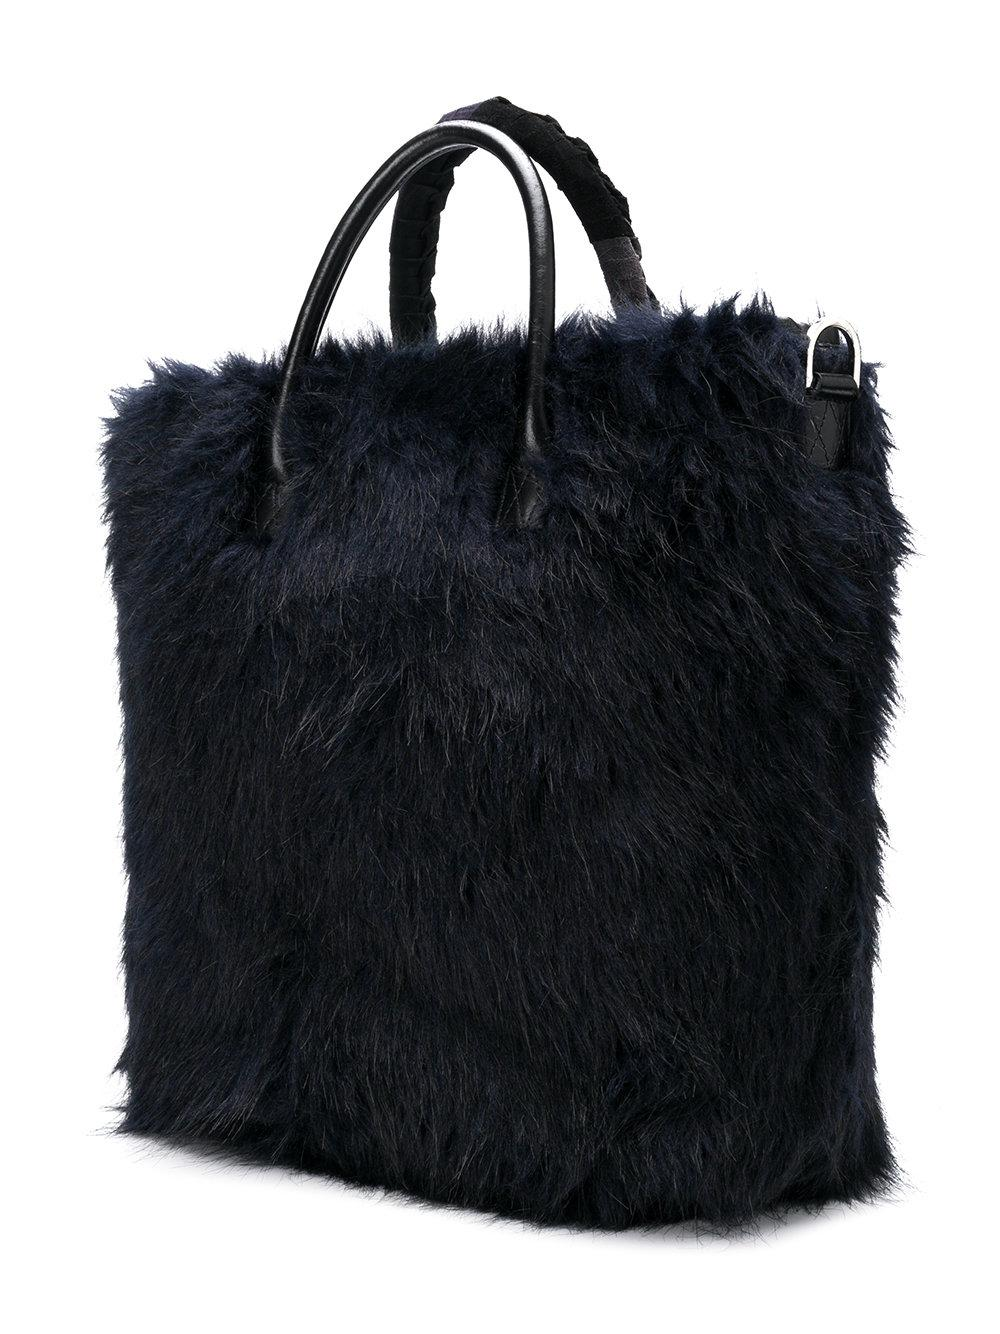 c6d5684708 Lyst - Sacai Furry Tote Bag in Blue